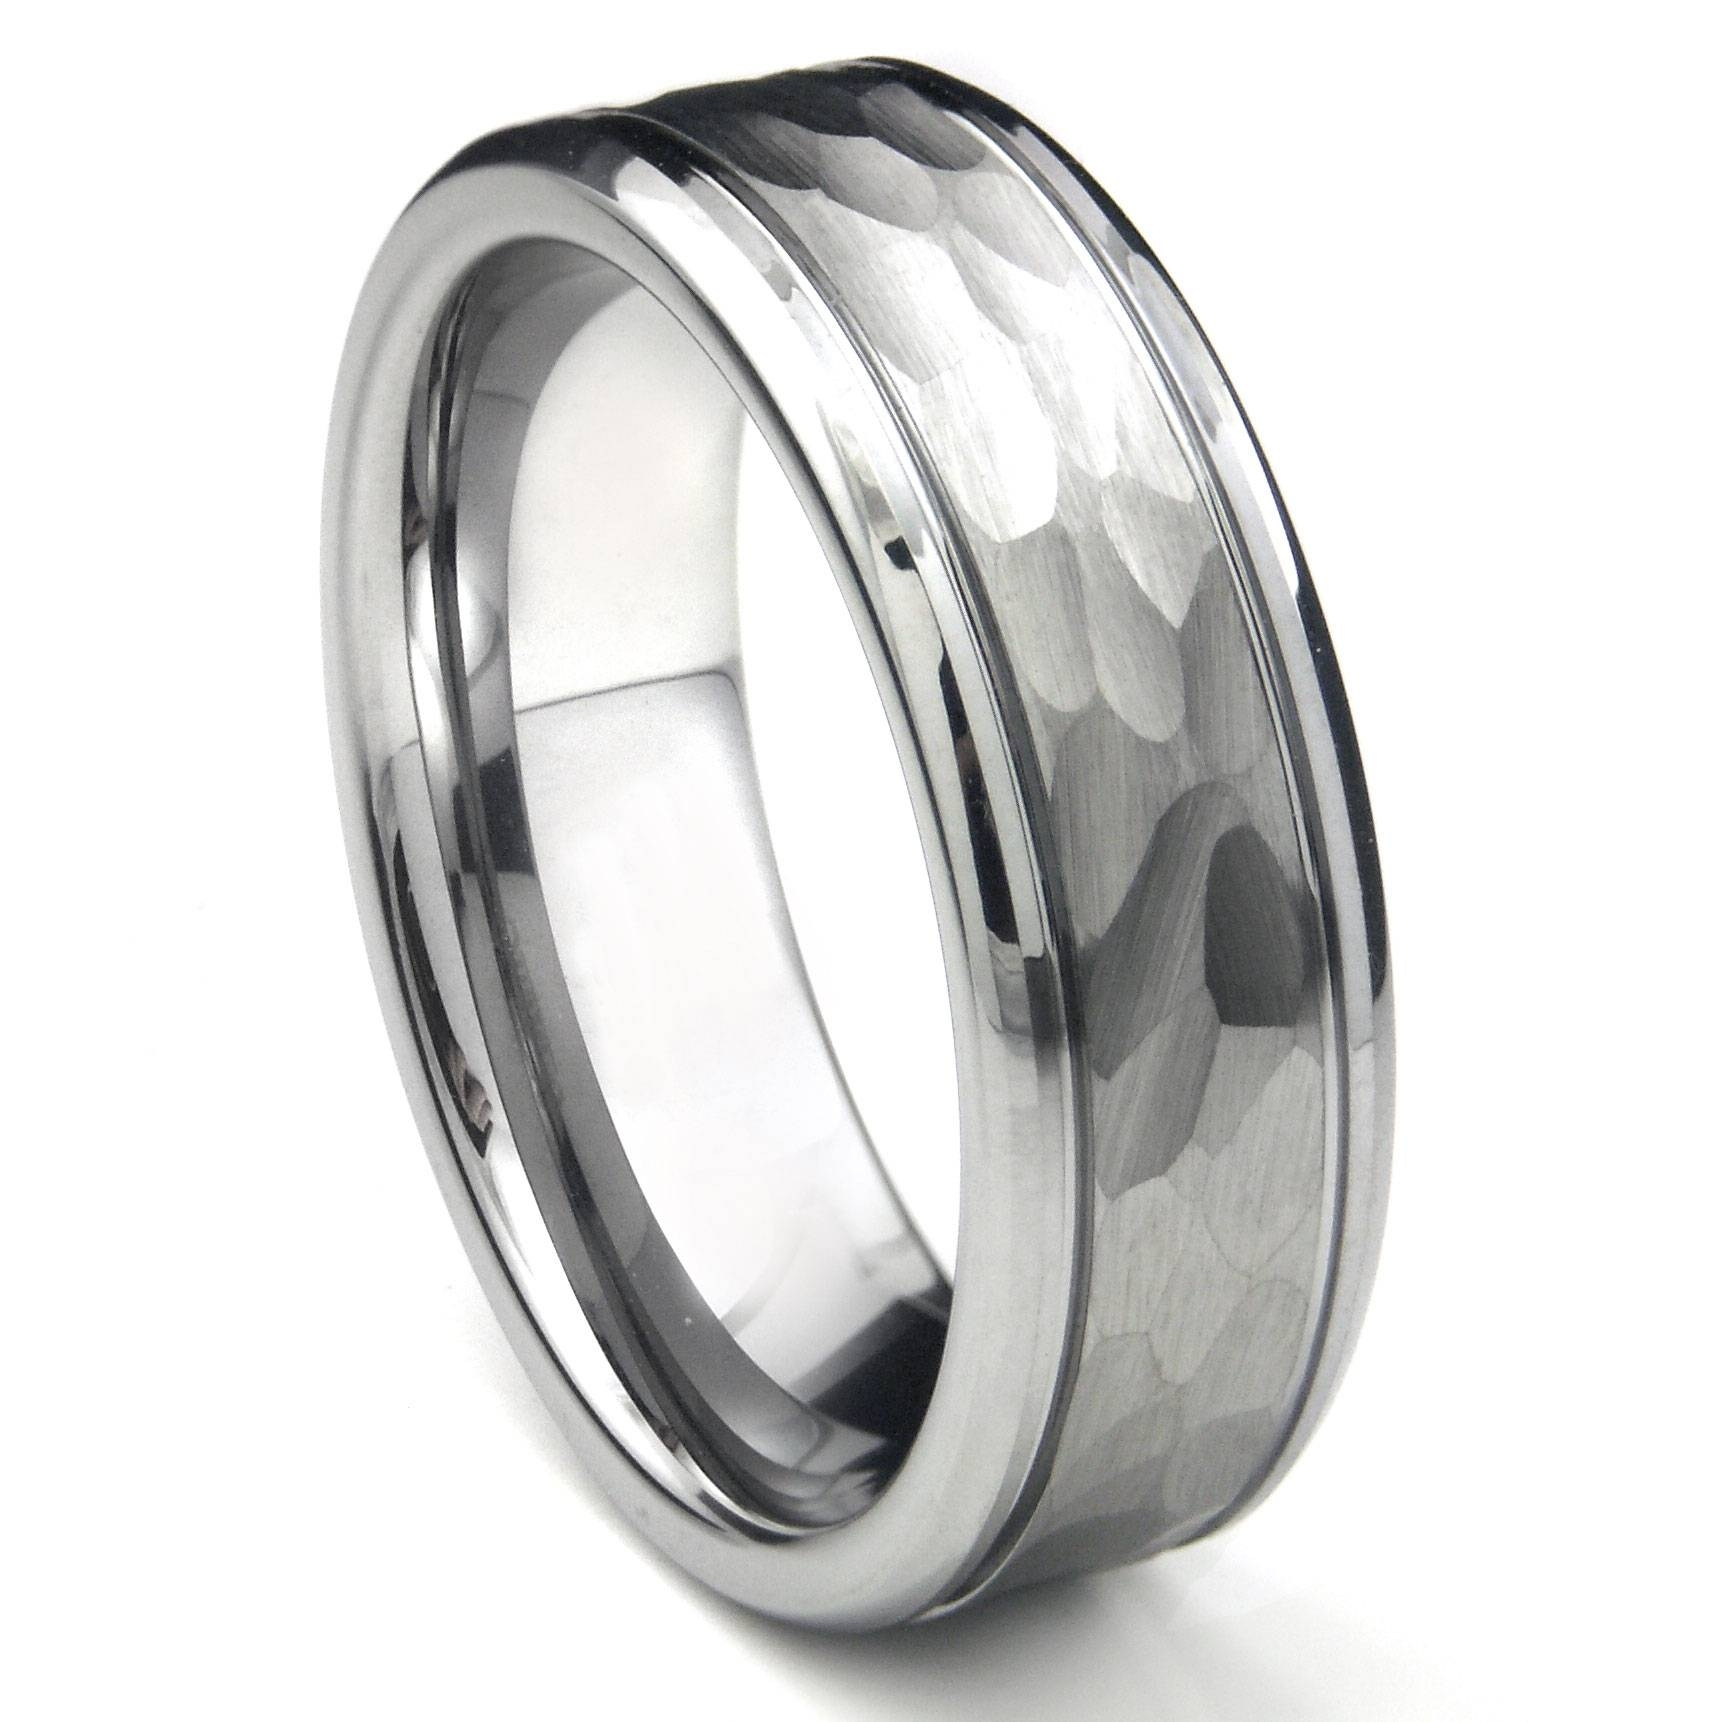 Tungsten Carbide Hammer Finish Wedding Band Ring /w Grooves Regarding Black Diamond Mens Wedding Bands (View 13 of 15)